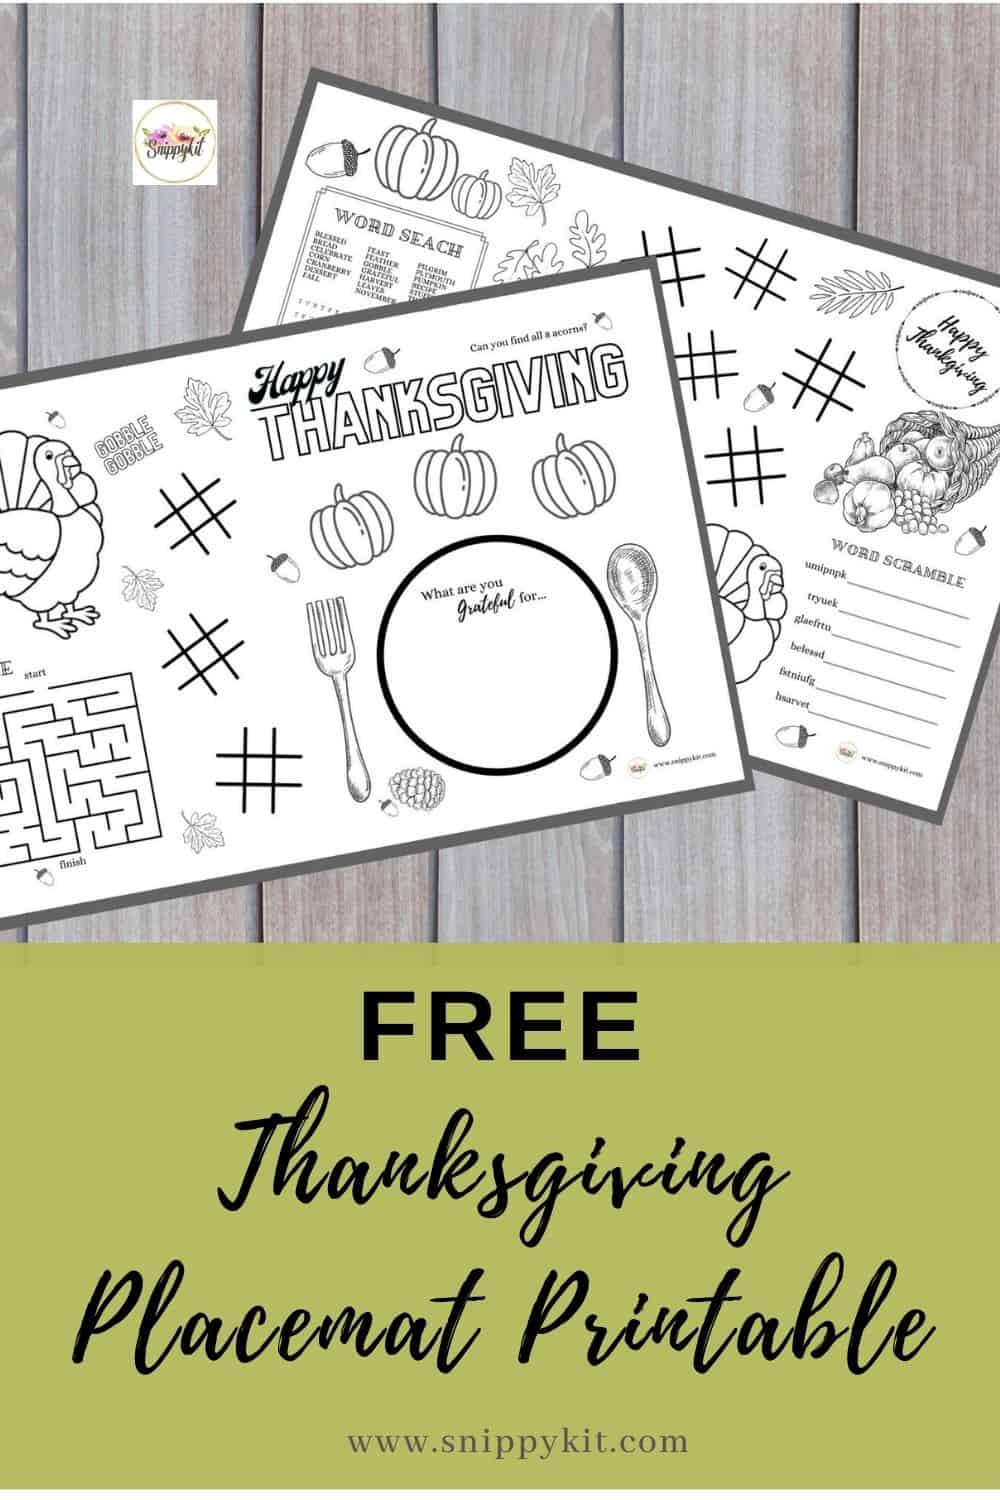 These adorable Thanksgiving placemats prinables have tons of games & activities to keep kids busy before, during, & after Thanksgiving dinner!